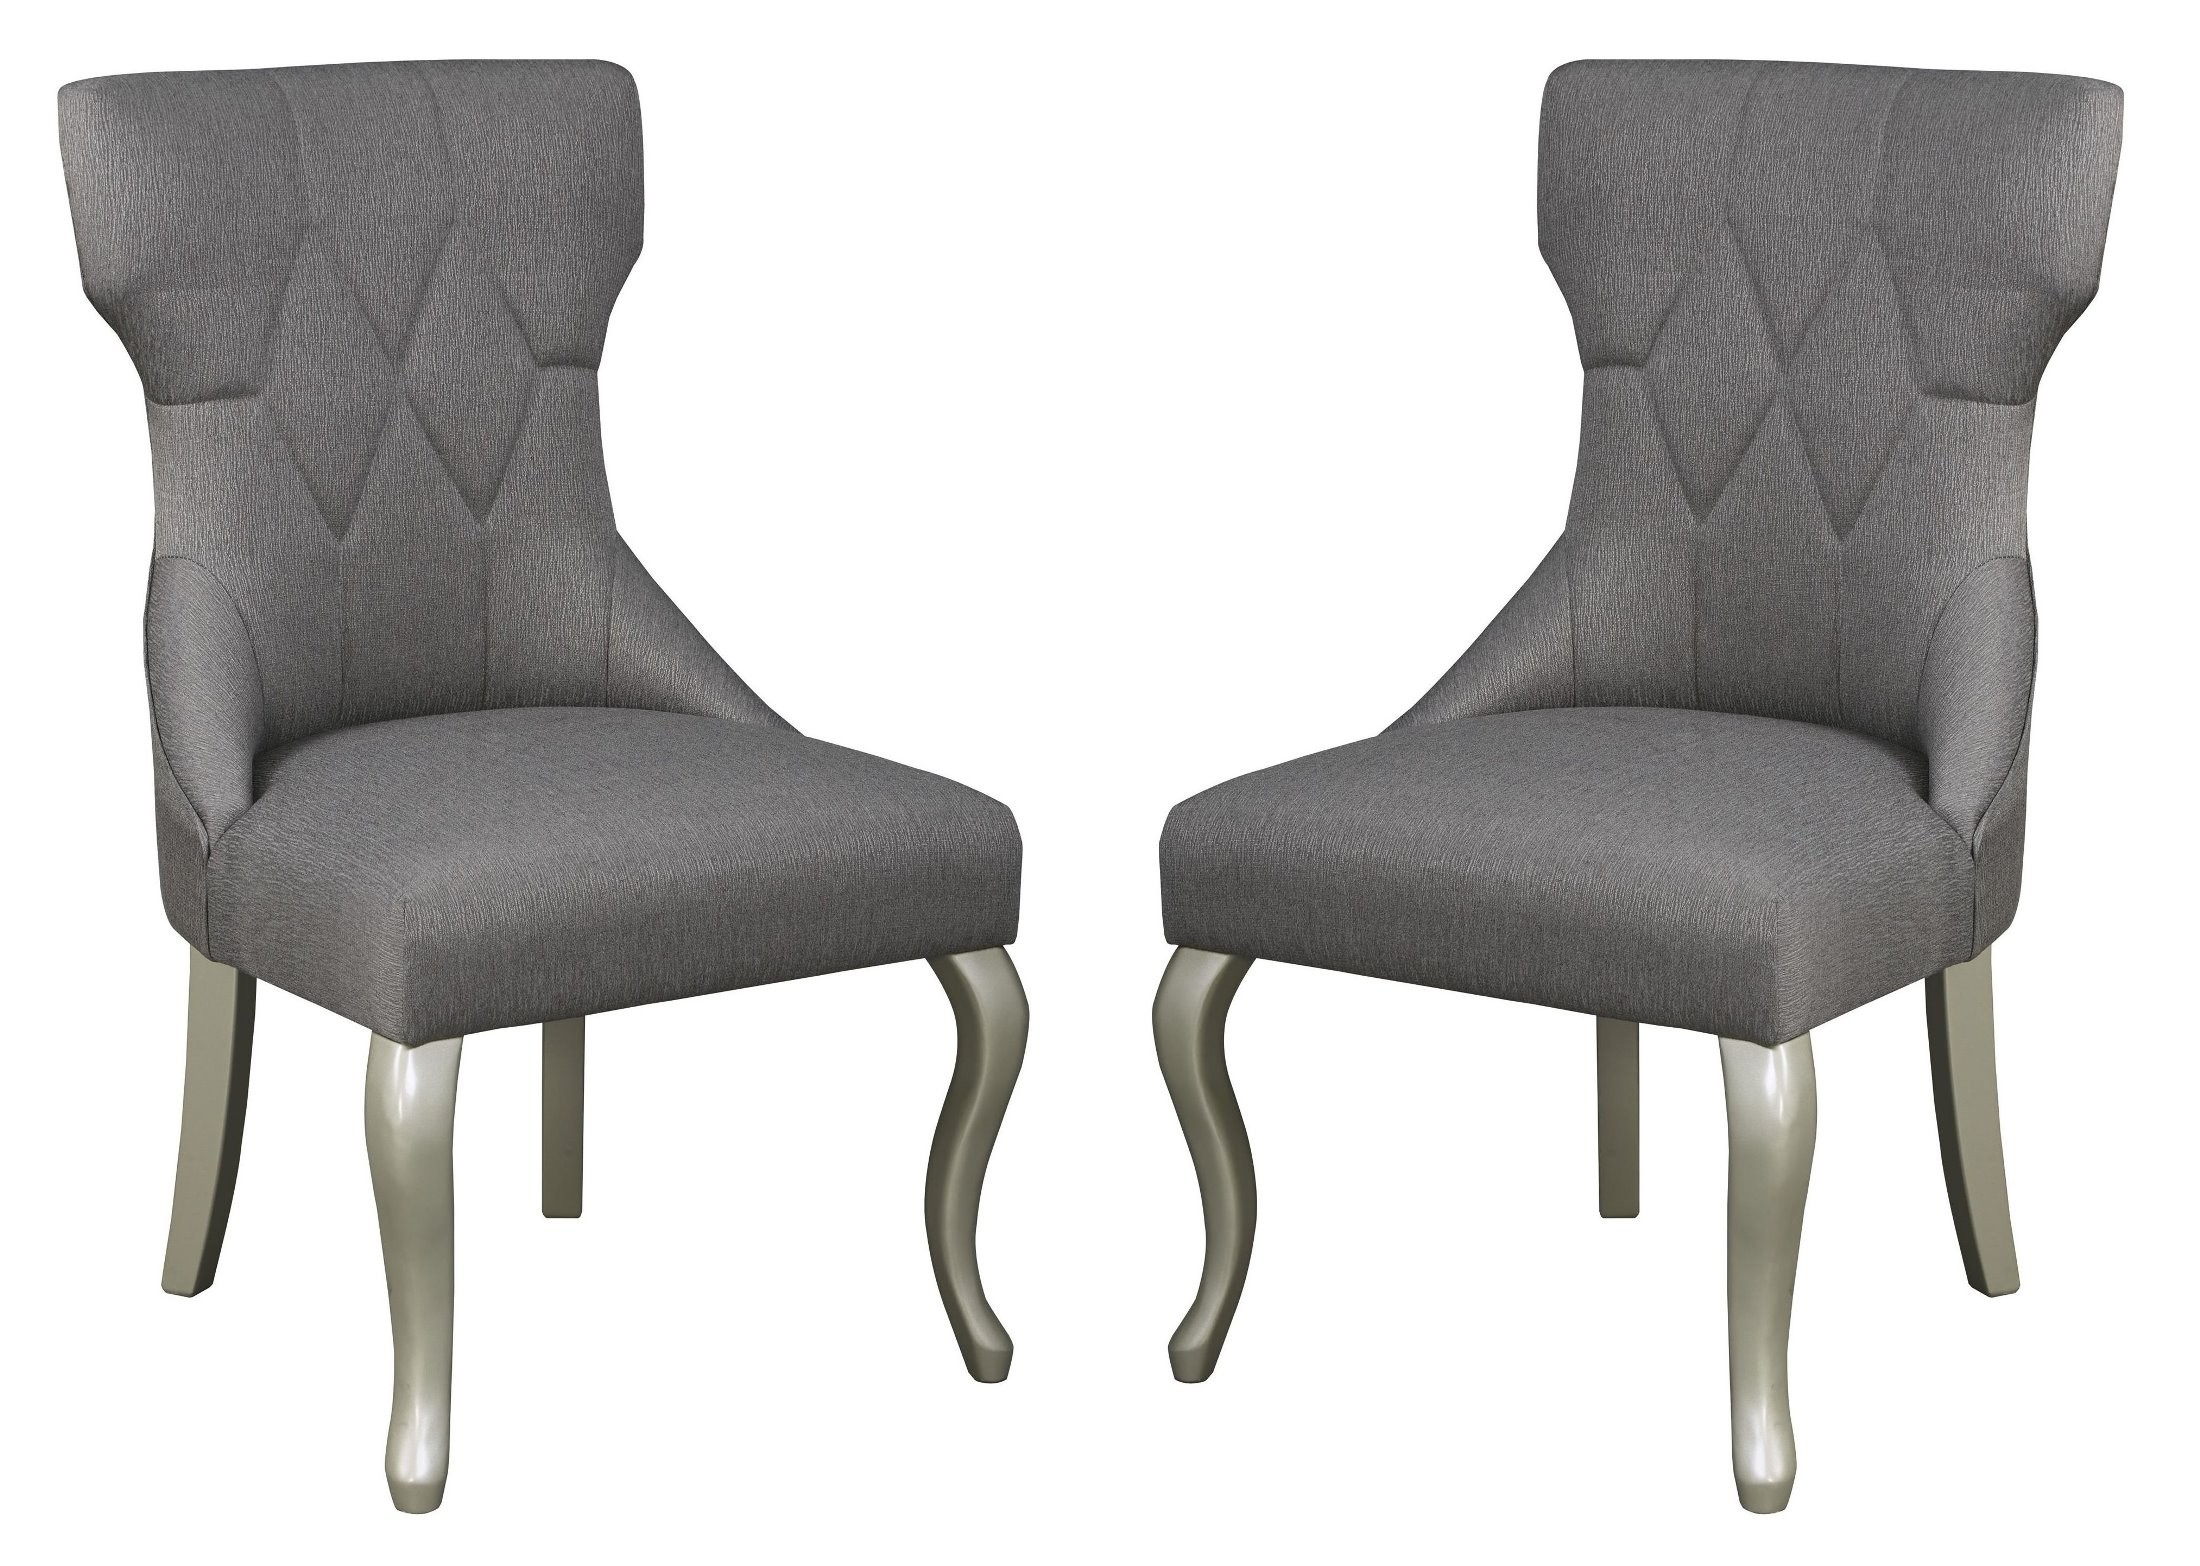 Grey Side Chair Coralayne Dark Gray Dining Upholstered Side Chair Set Of 2